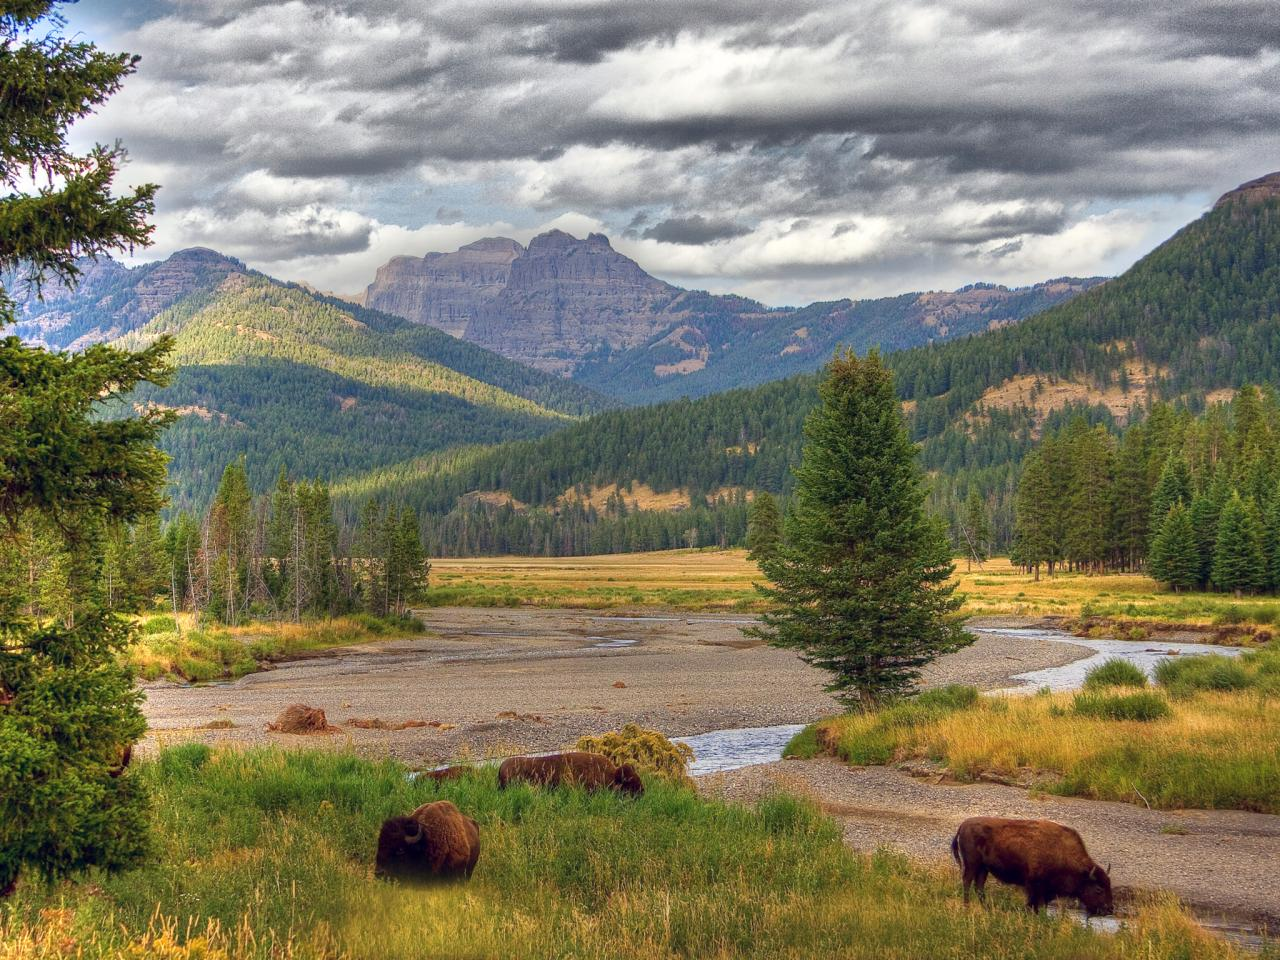 yellowstone national park lesbian singles Posts about gay bhutan tours written by outjourneys  travel guide in india, yellowstone national park 5 comments  singles from surrogacy (ndtvcom.